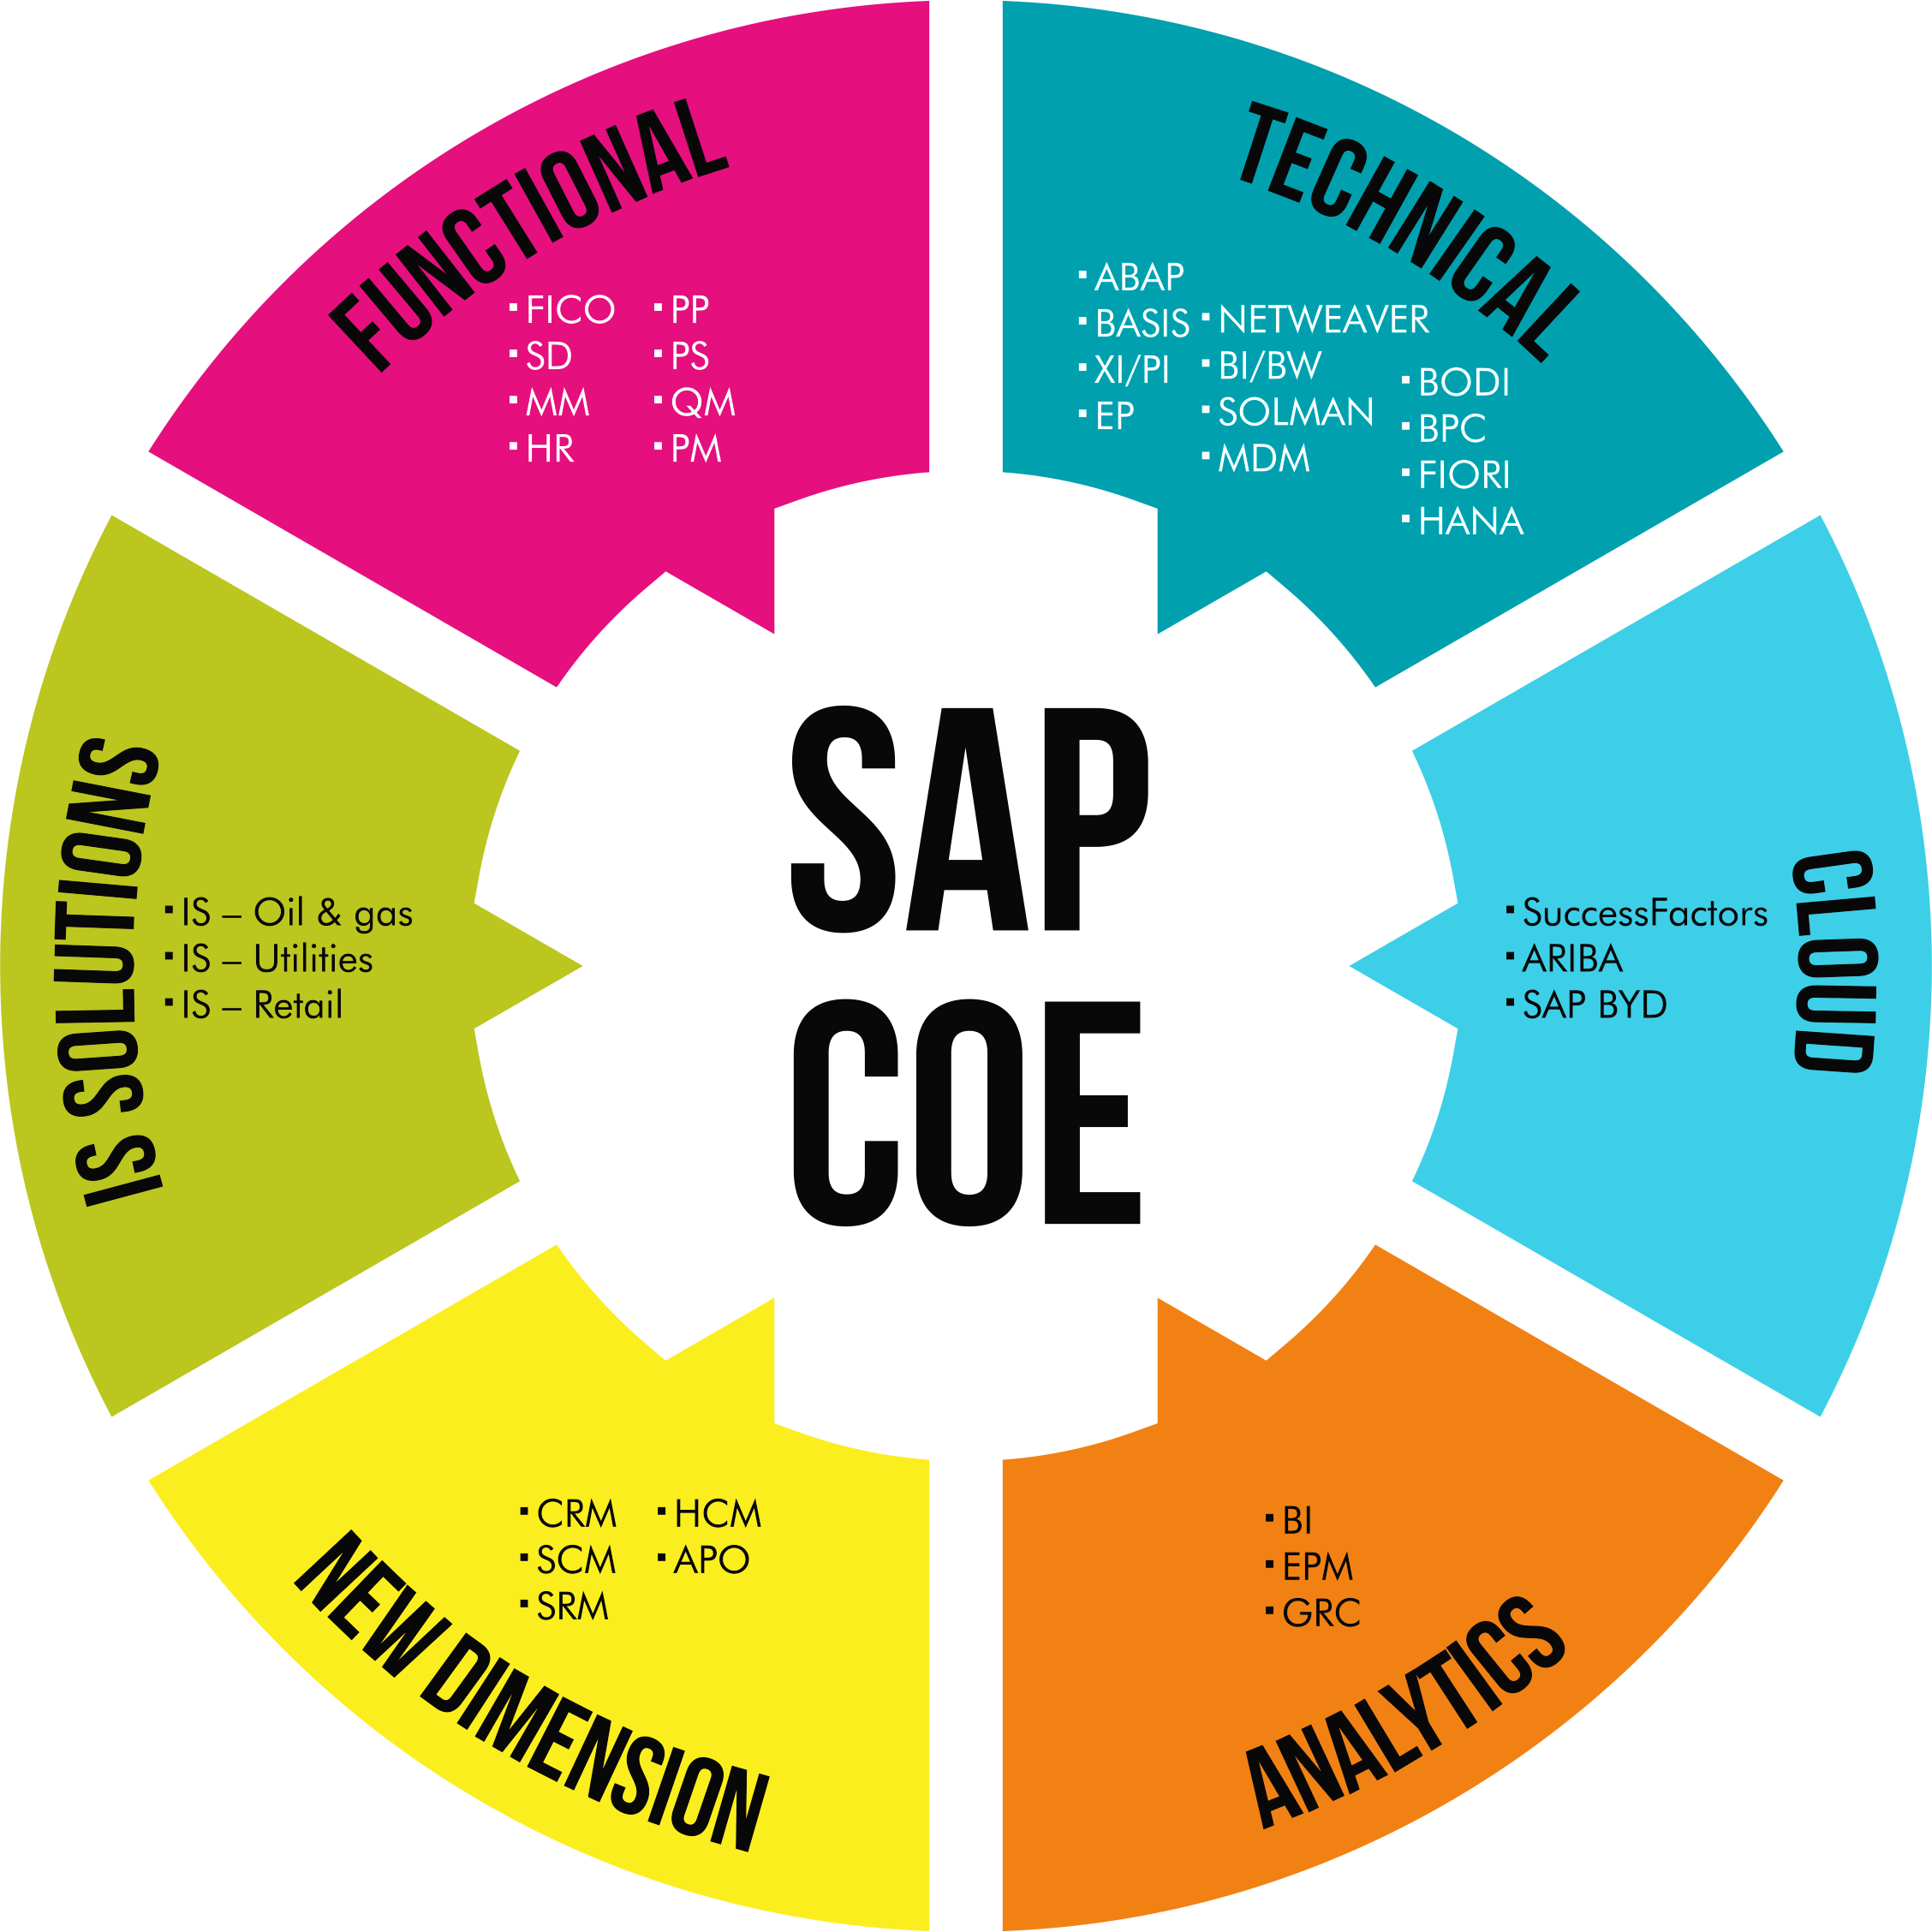 Sap Consulting And Enterprise Application